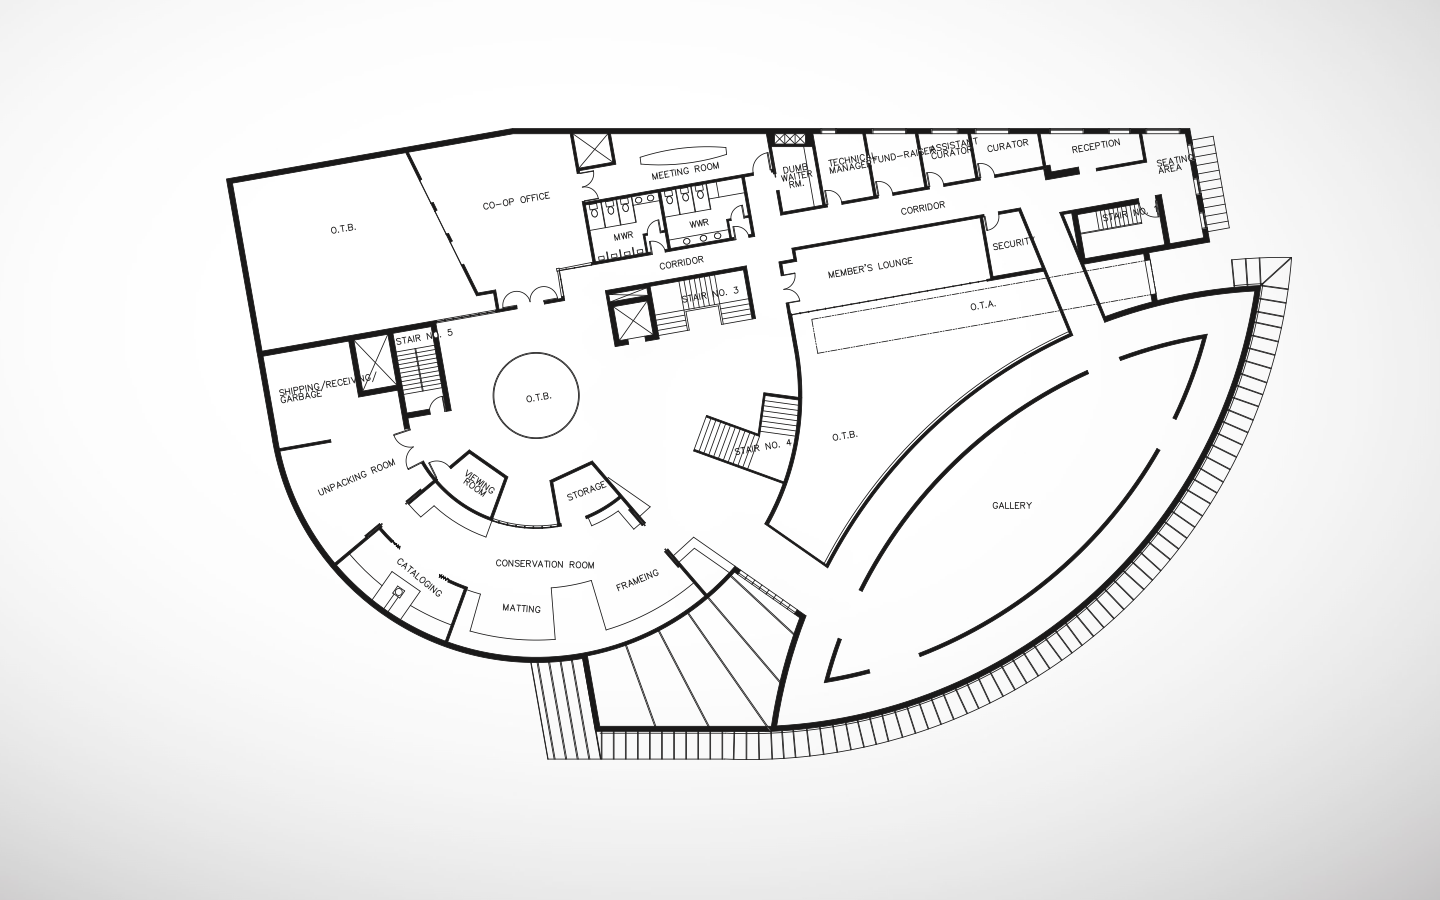 Photographic Arts Center - Second Floor   Floor Plan, by Sanjiv Sirpal